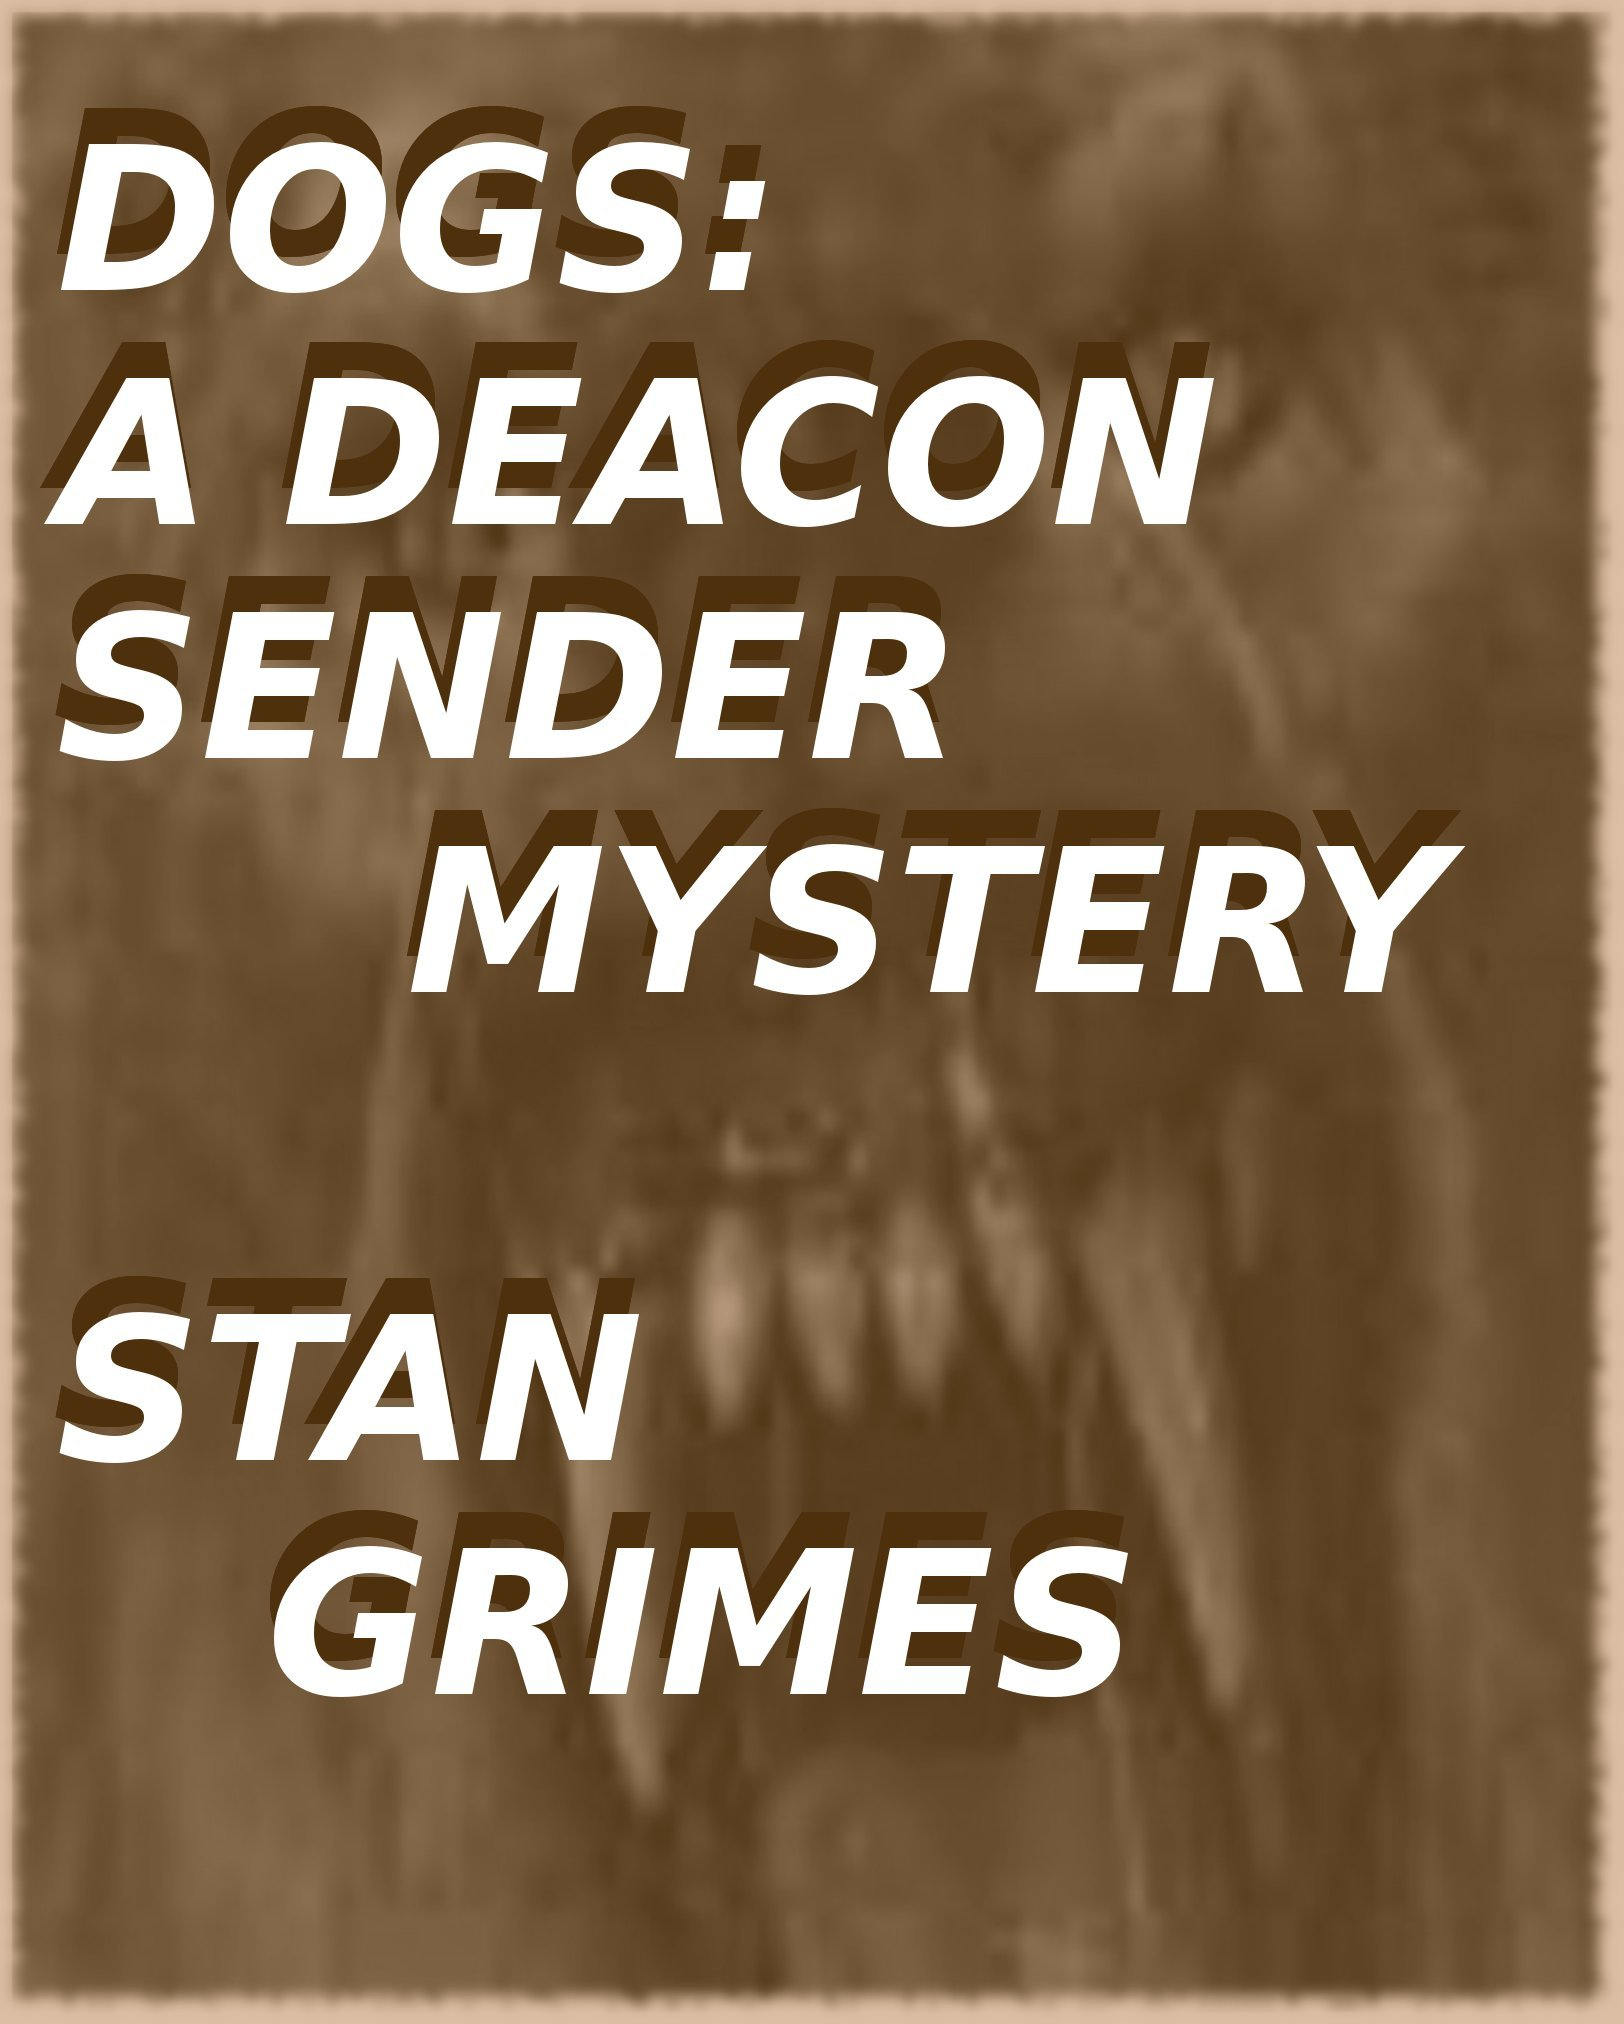 Dogs: A Deacon Sender Mystery By: Stan Grimes